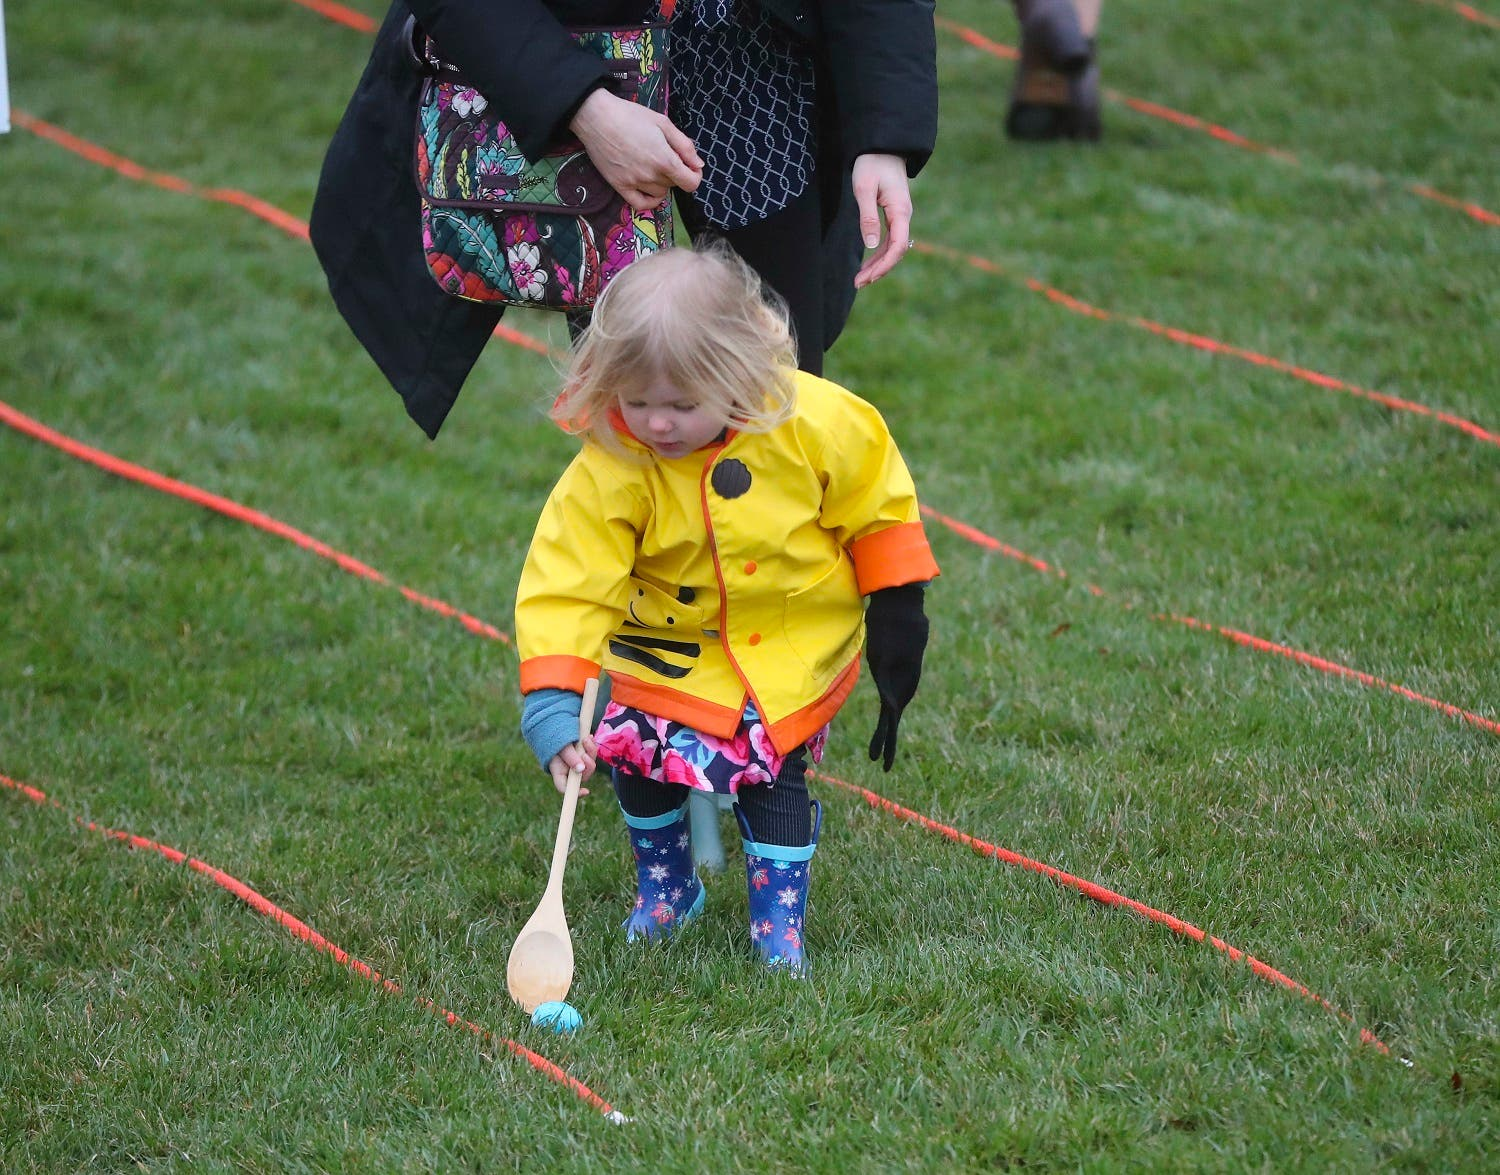 A child participates in the annual White House Easter Egg Roll on the South Lawn of the White House in Washington, Monday, April 2, 2018. (AP